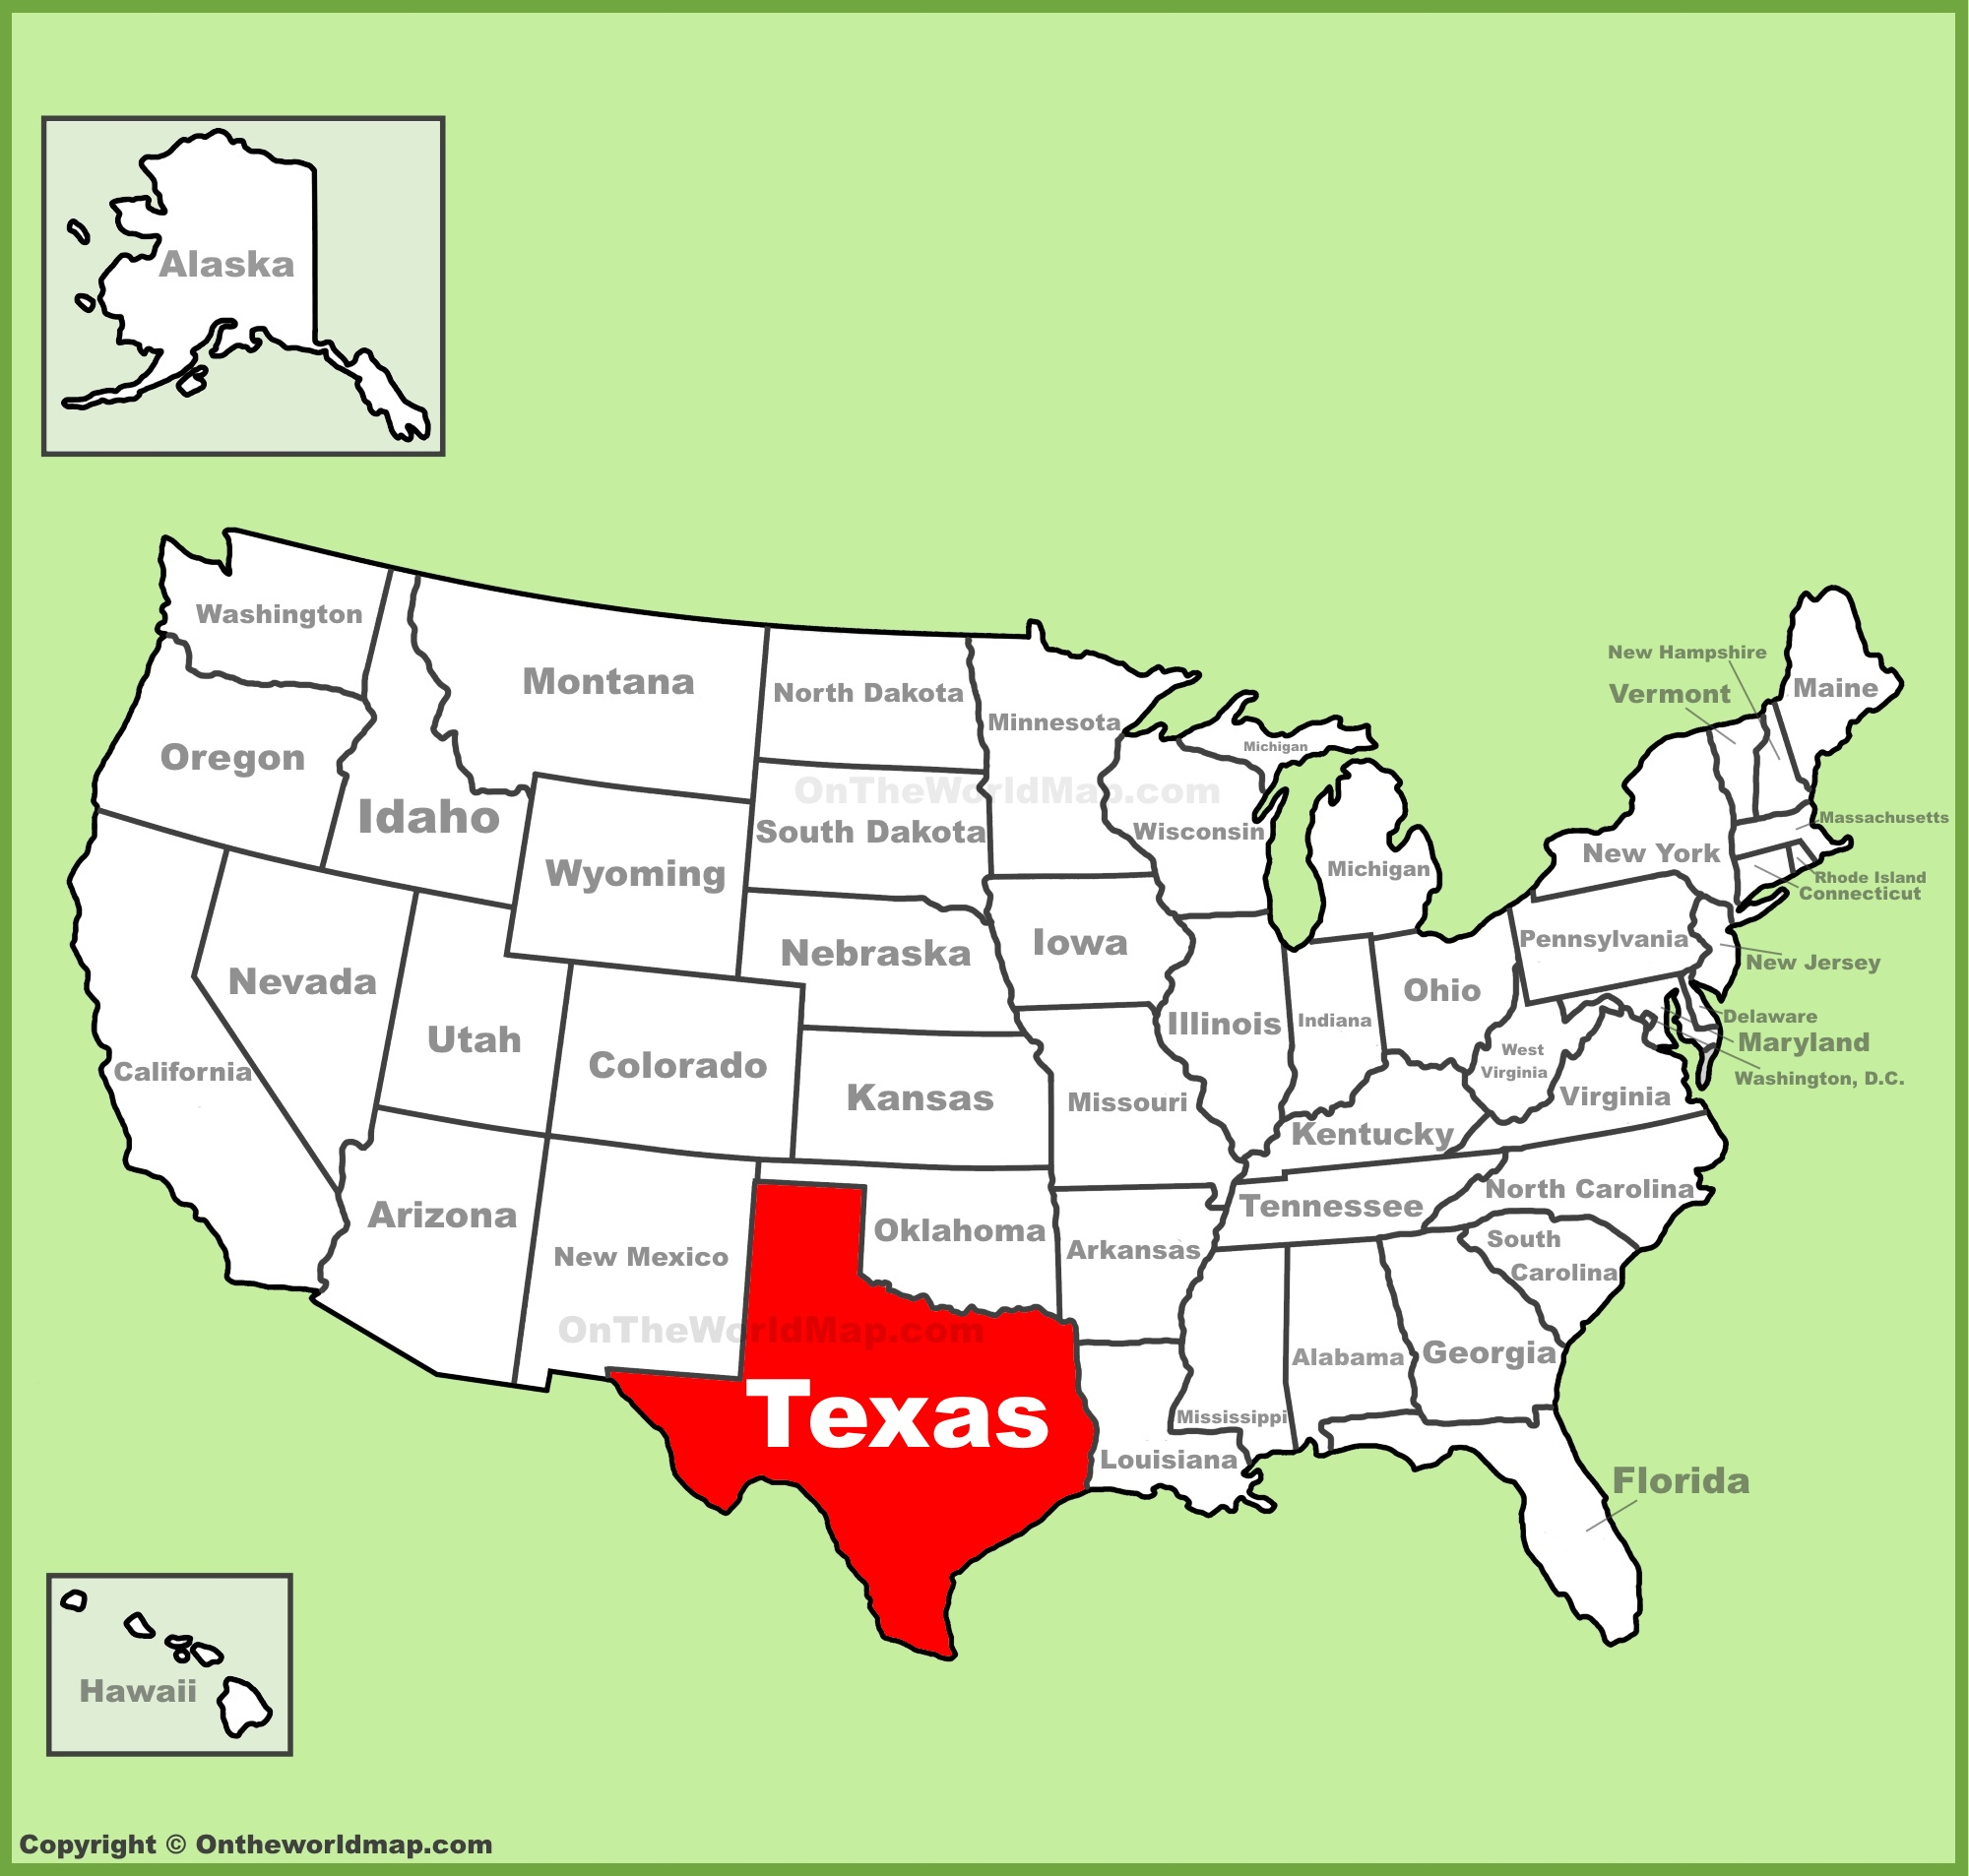 Texas location on the U.S. Map